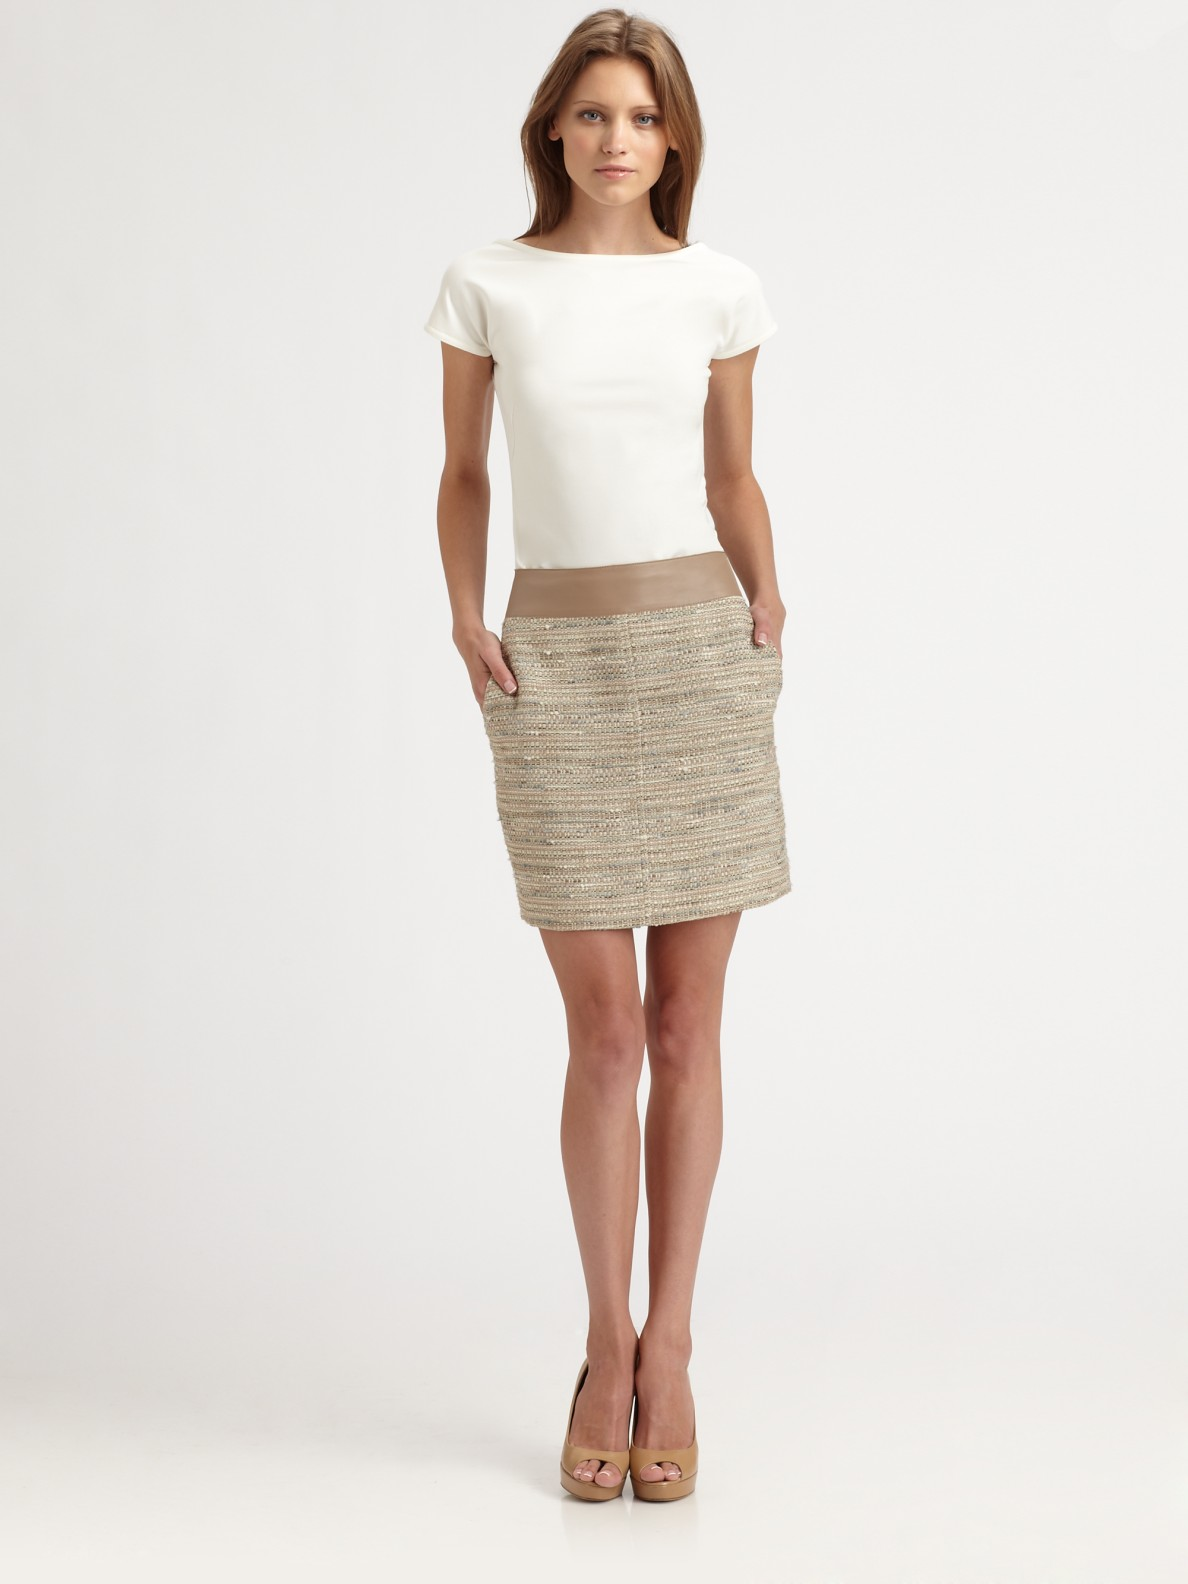 Akris Punto Leather-Trimmed Tweed Dress Authentic Cheap Online Lowest Price Cheap Online For Sale Buy Authentic Online Vr6iM